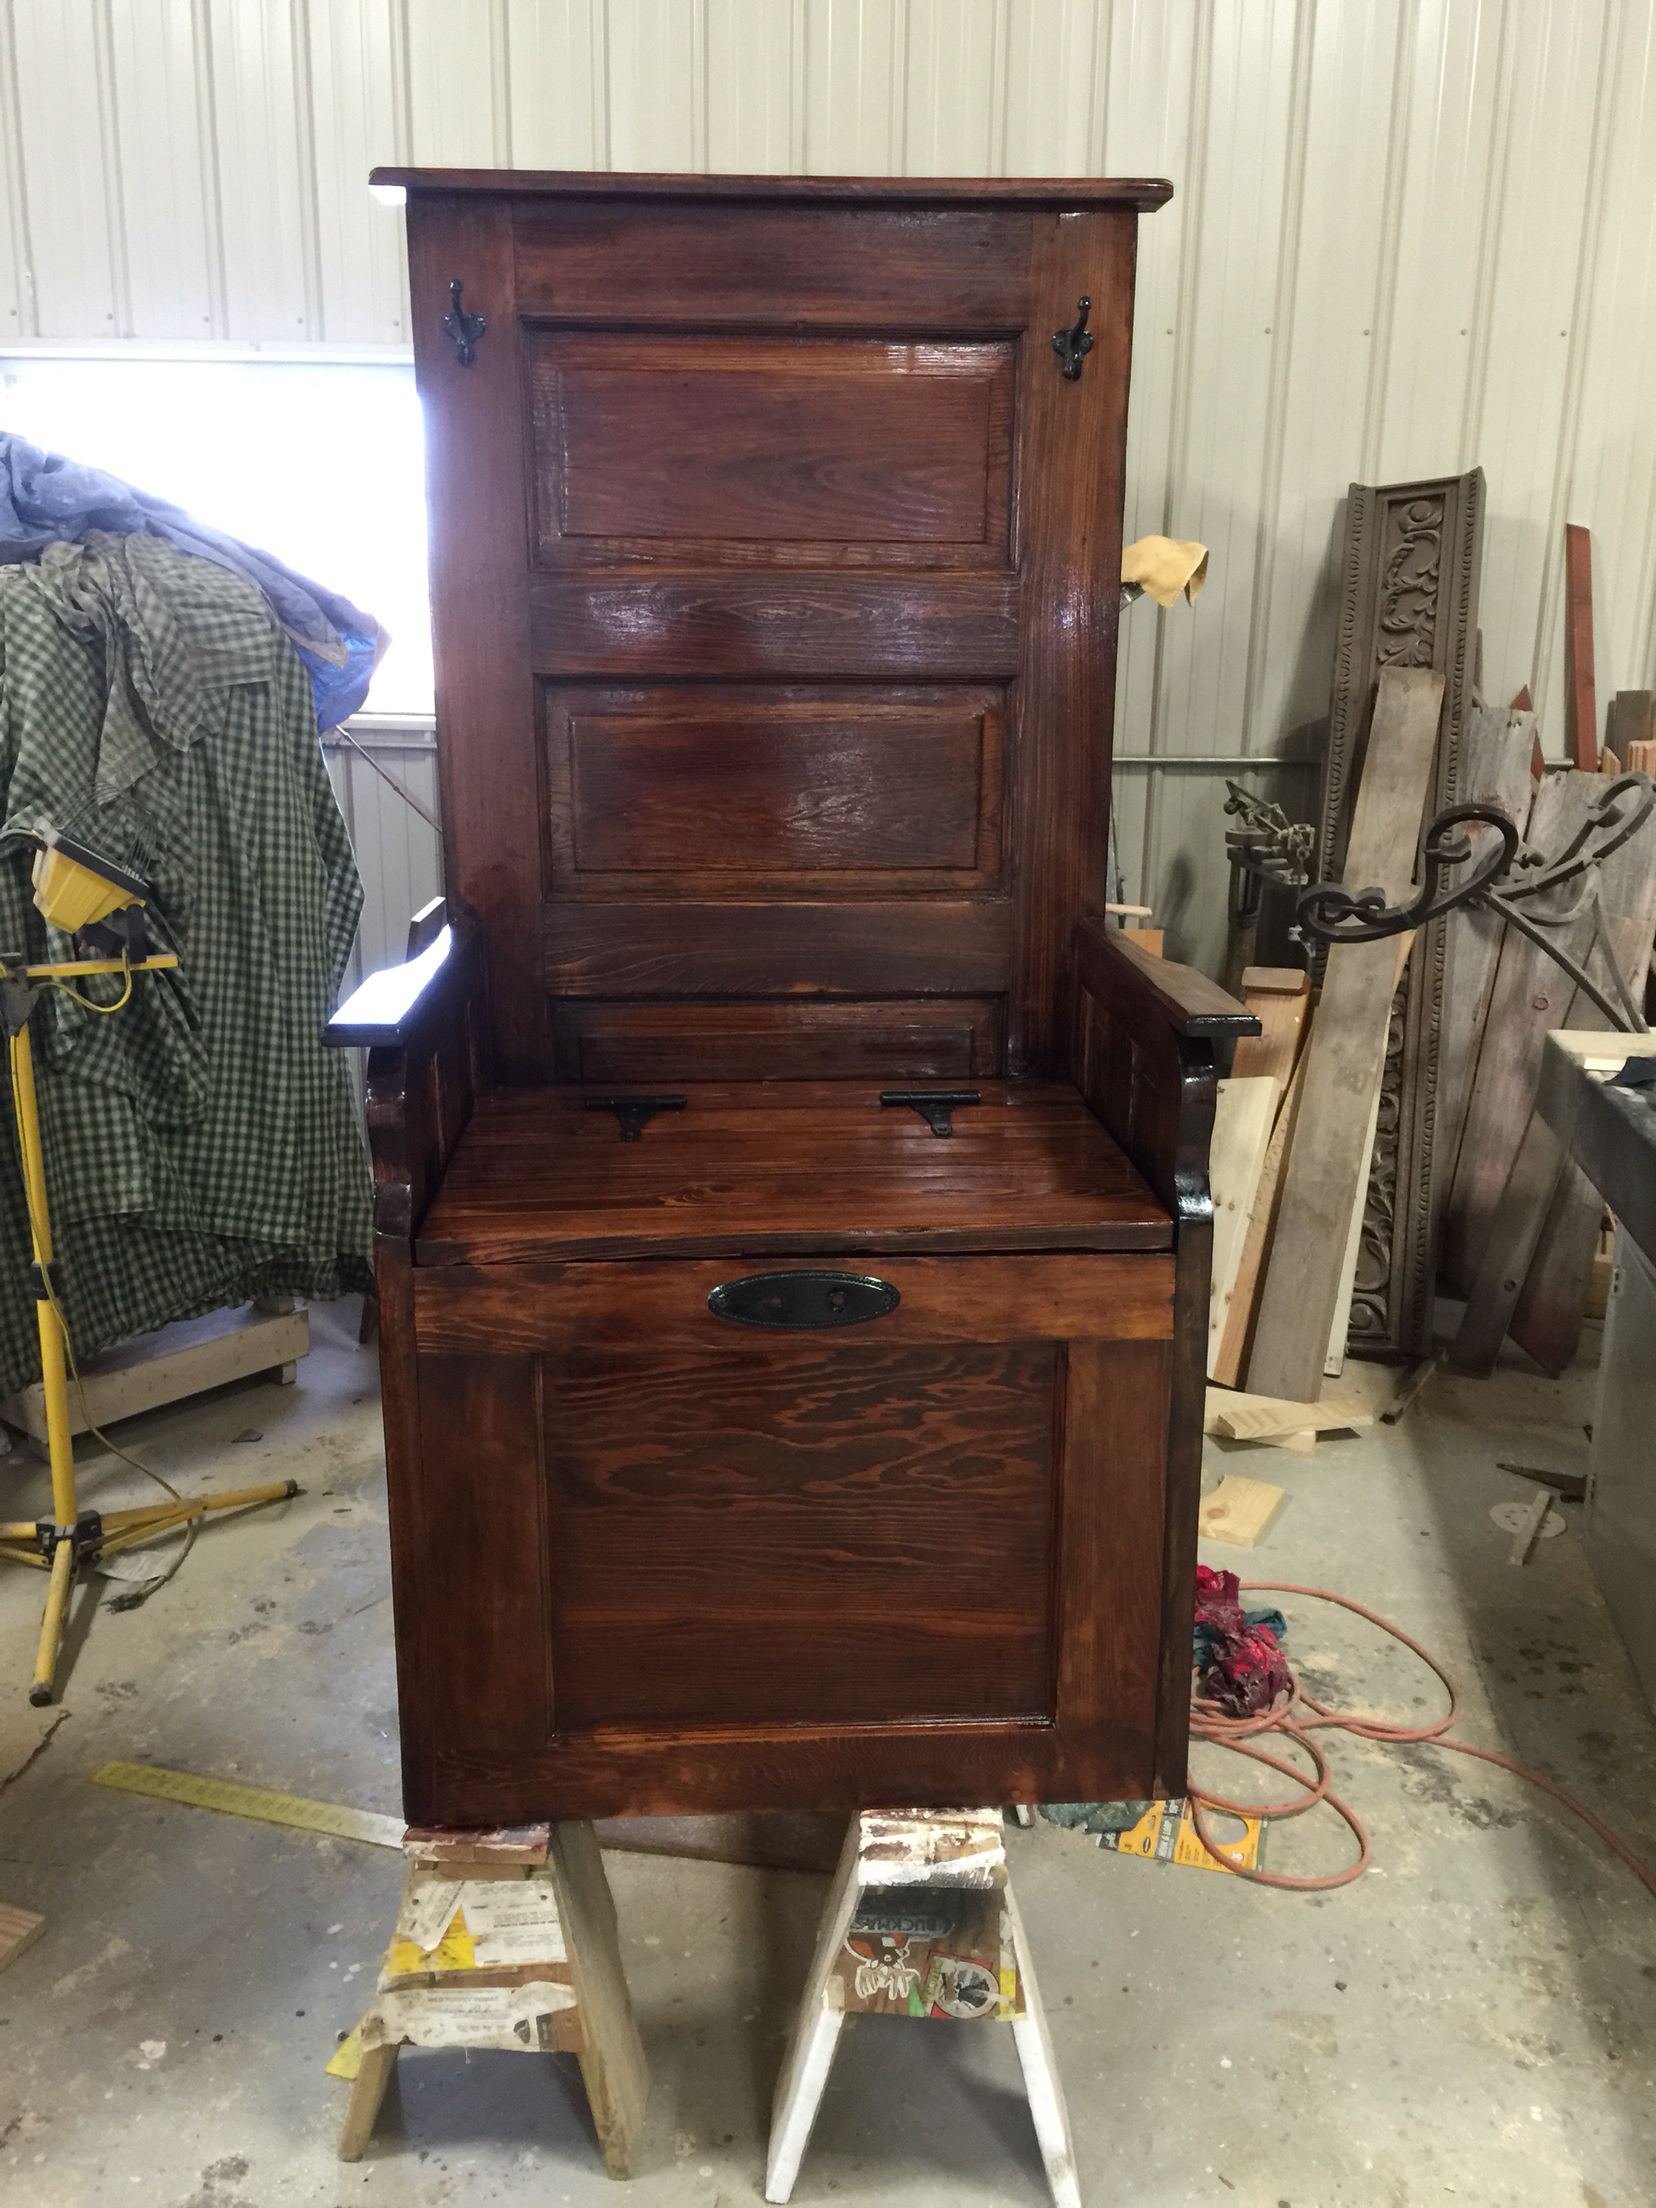 Hall Tree Made From Old Door With Storage In Seat.